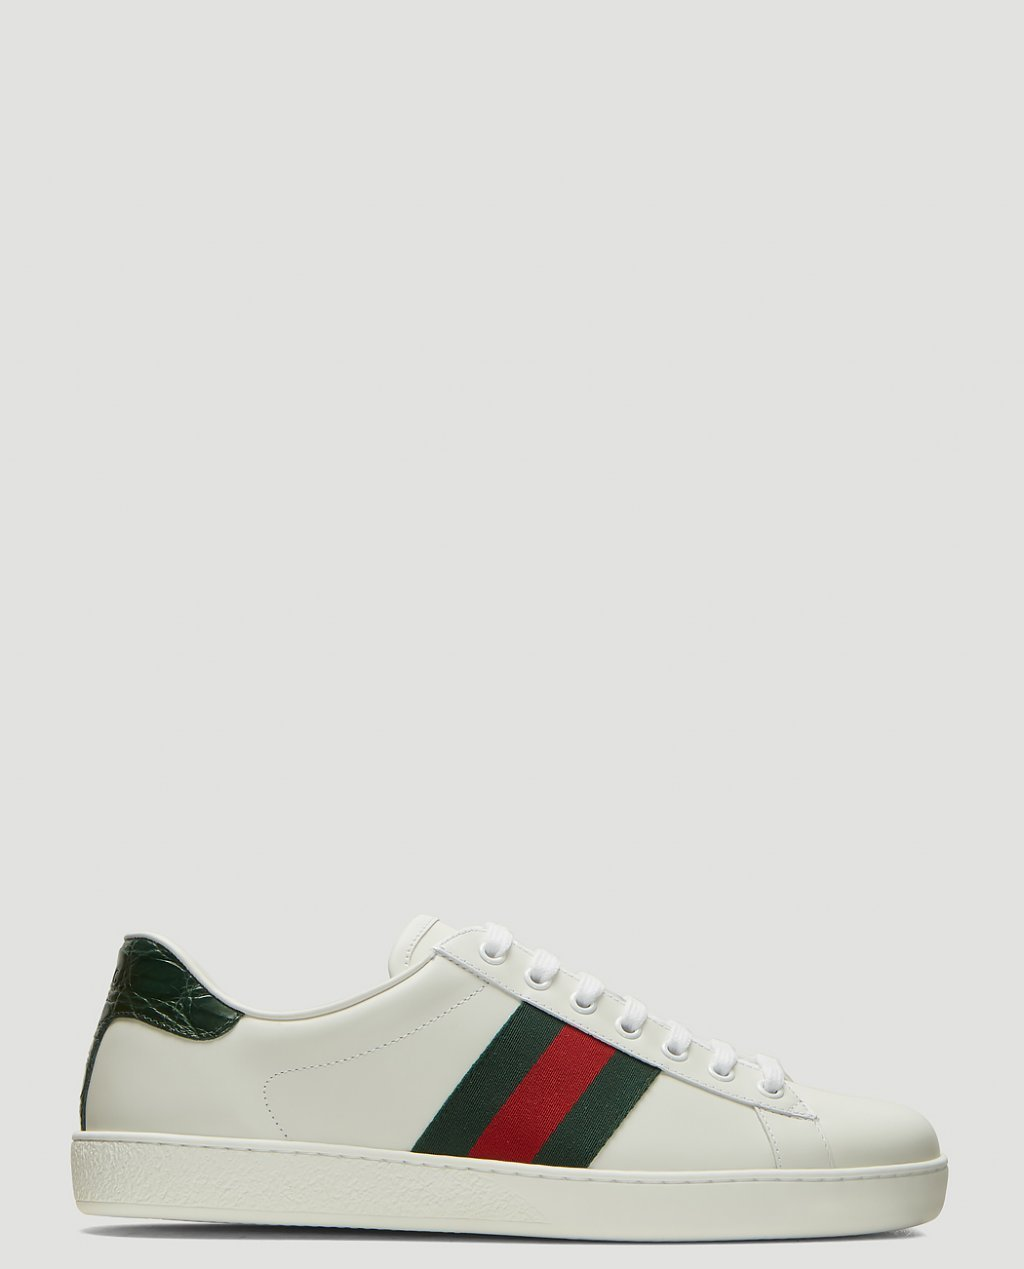 Gucci Ace Leather Sneakers in White